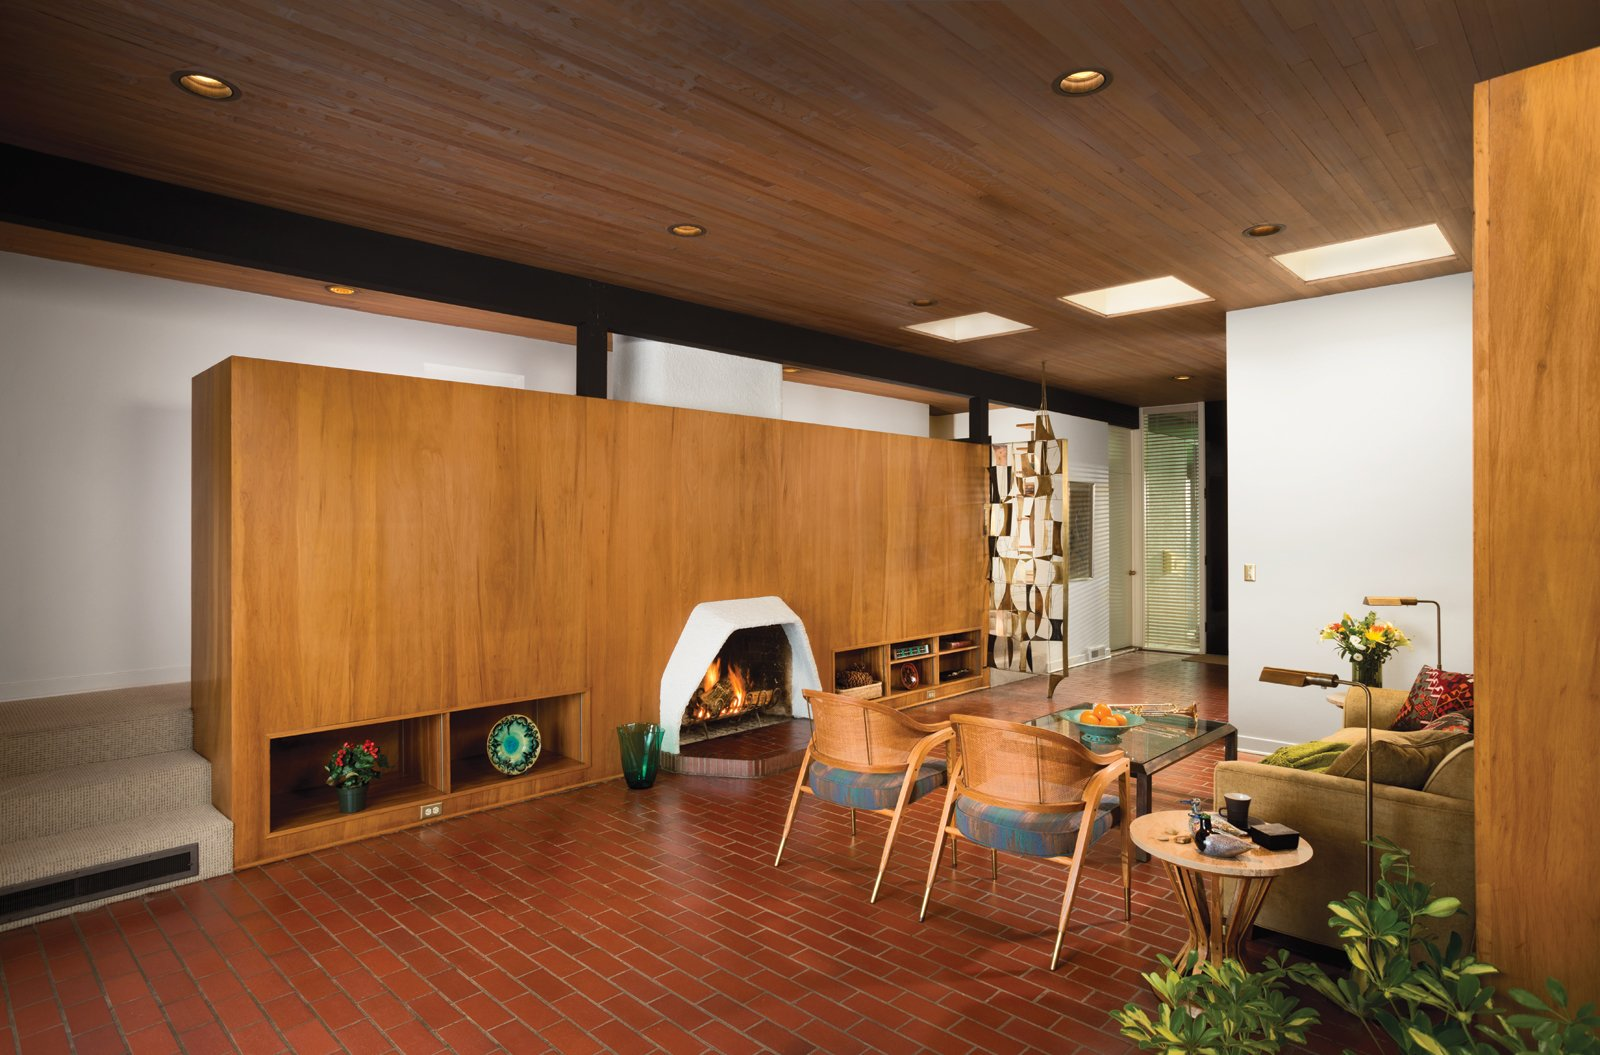 Living Room, Wood Burning Fireplace, Brick Floor, and Standard Layout Fireplace The living room features two side chairs and an end table by Edward Wormley for Dunbar and a bronze screen designed by Harold Balazs.  Photo 3 of 4 in A 1950s Mid-Century Home Joins the Spokane Register of Historic Places